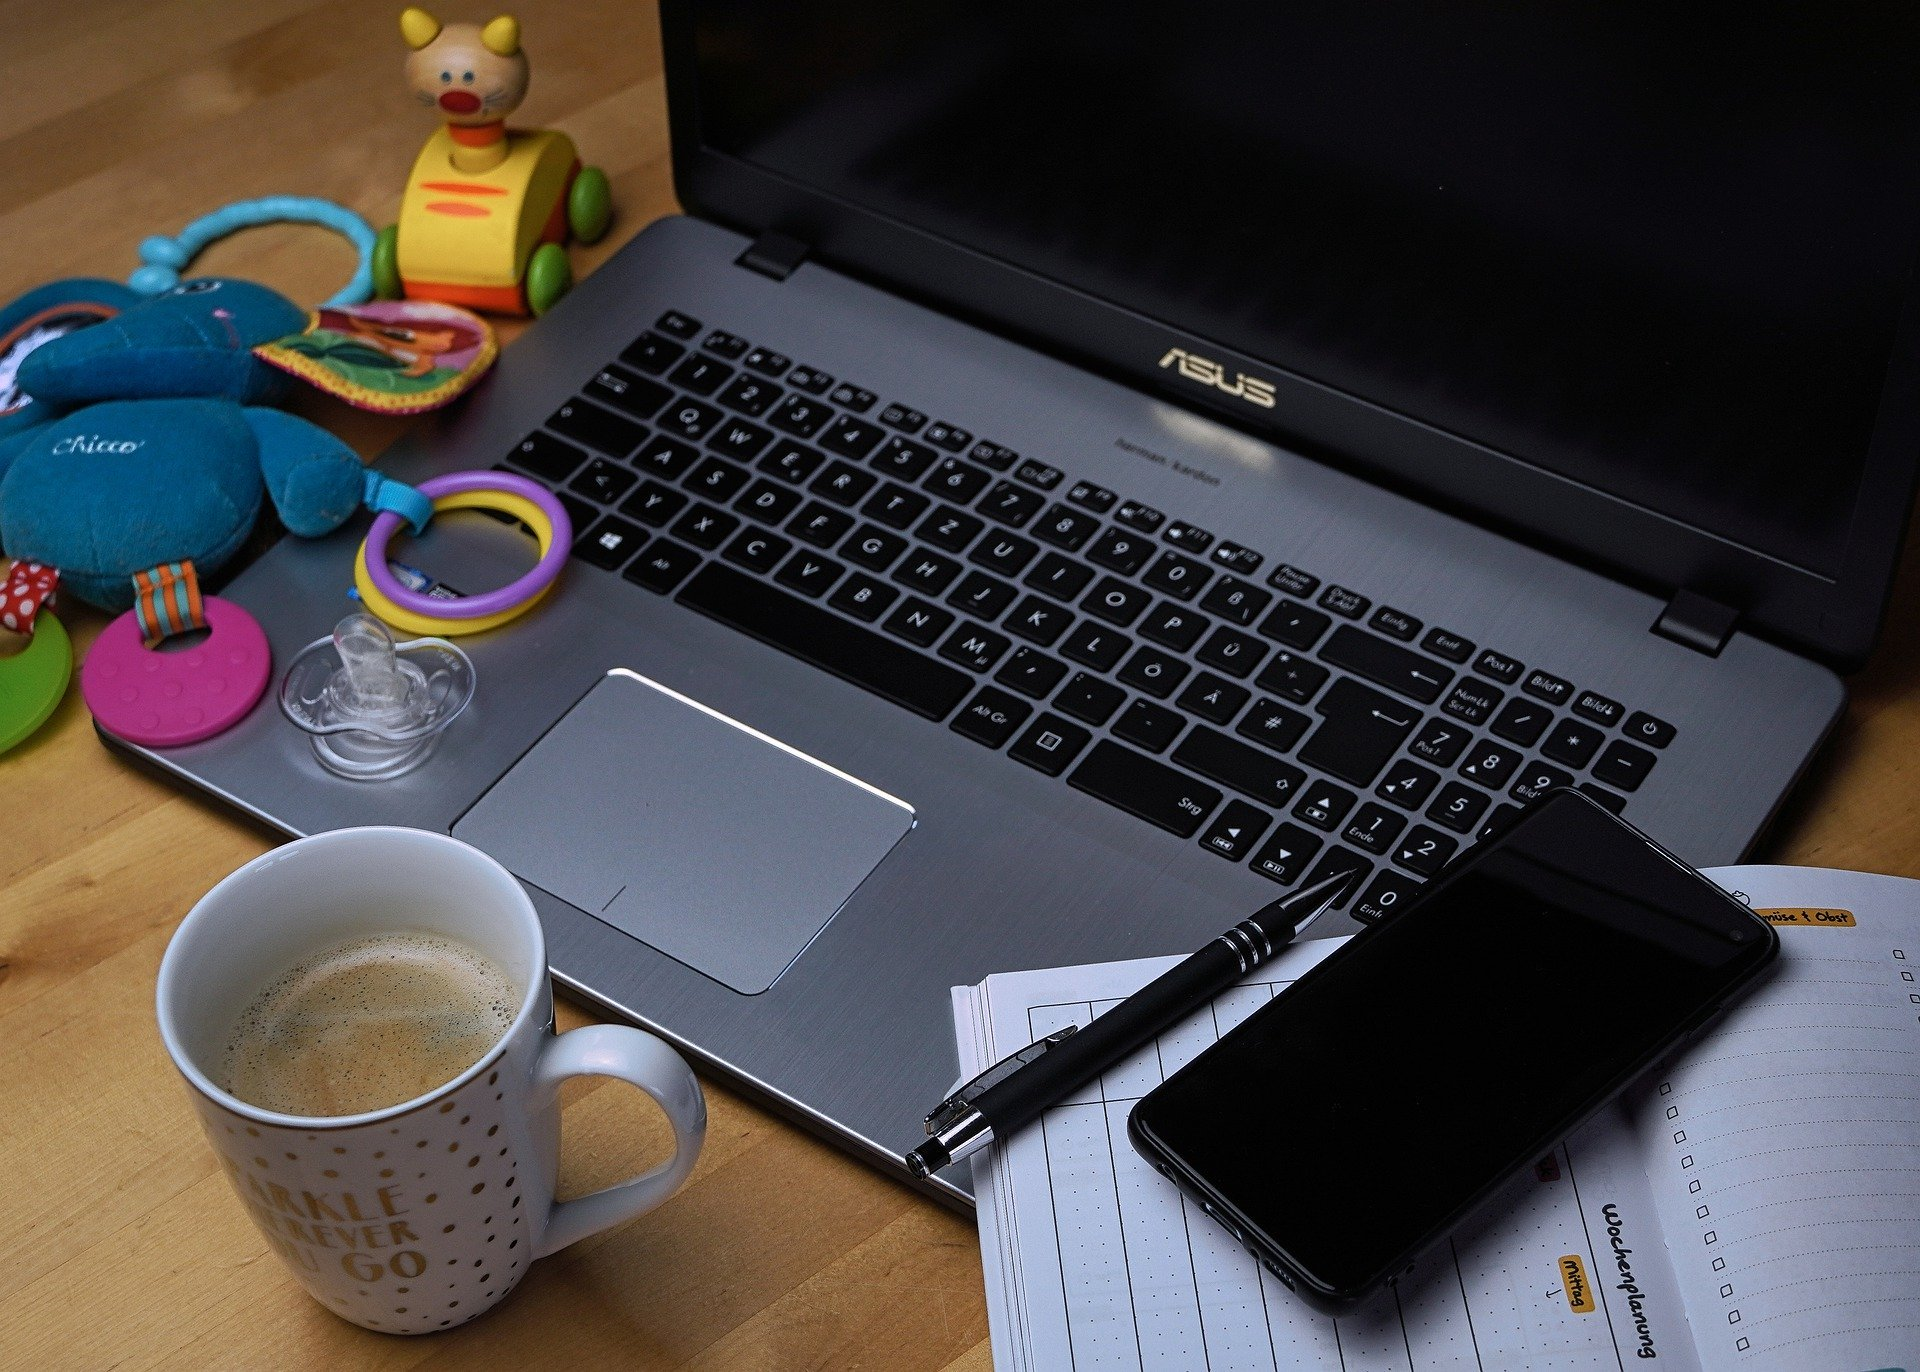 Computer, drink and children's toys - representing working from home with children during the pandemic